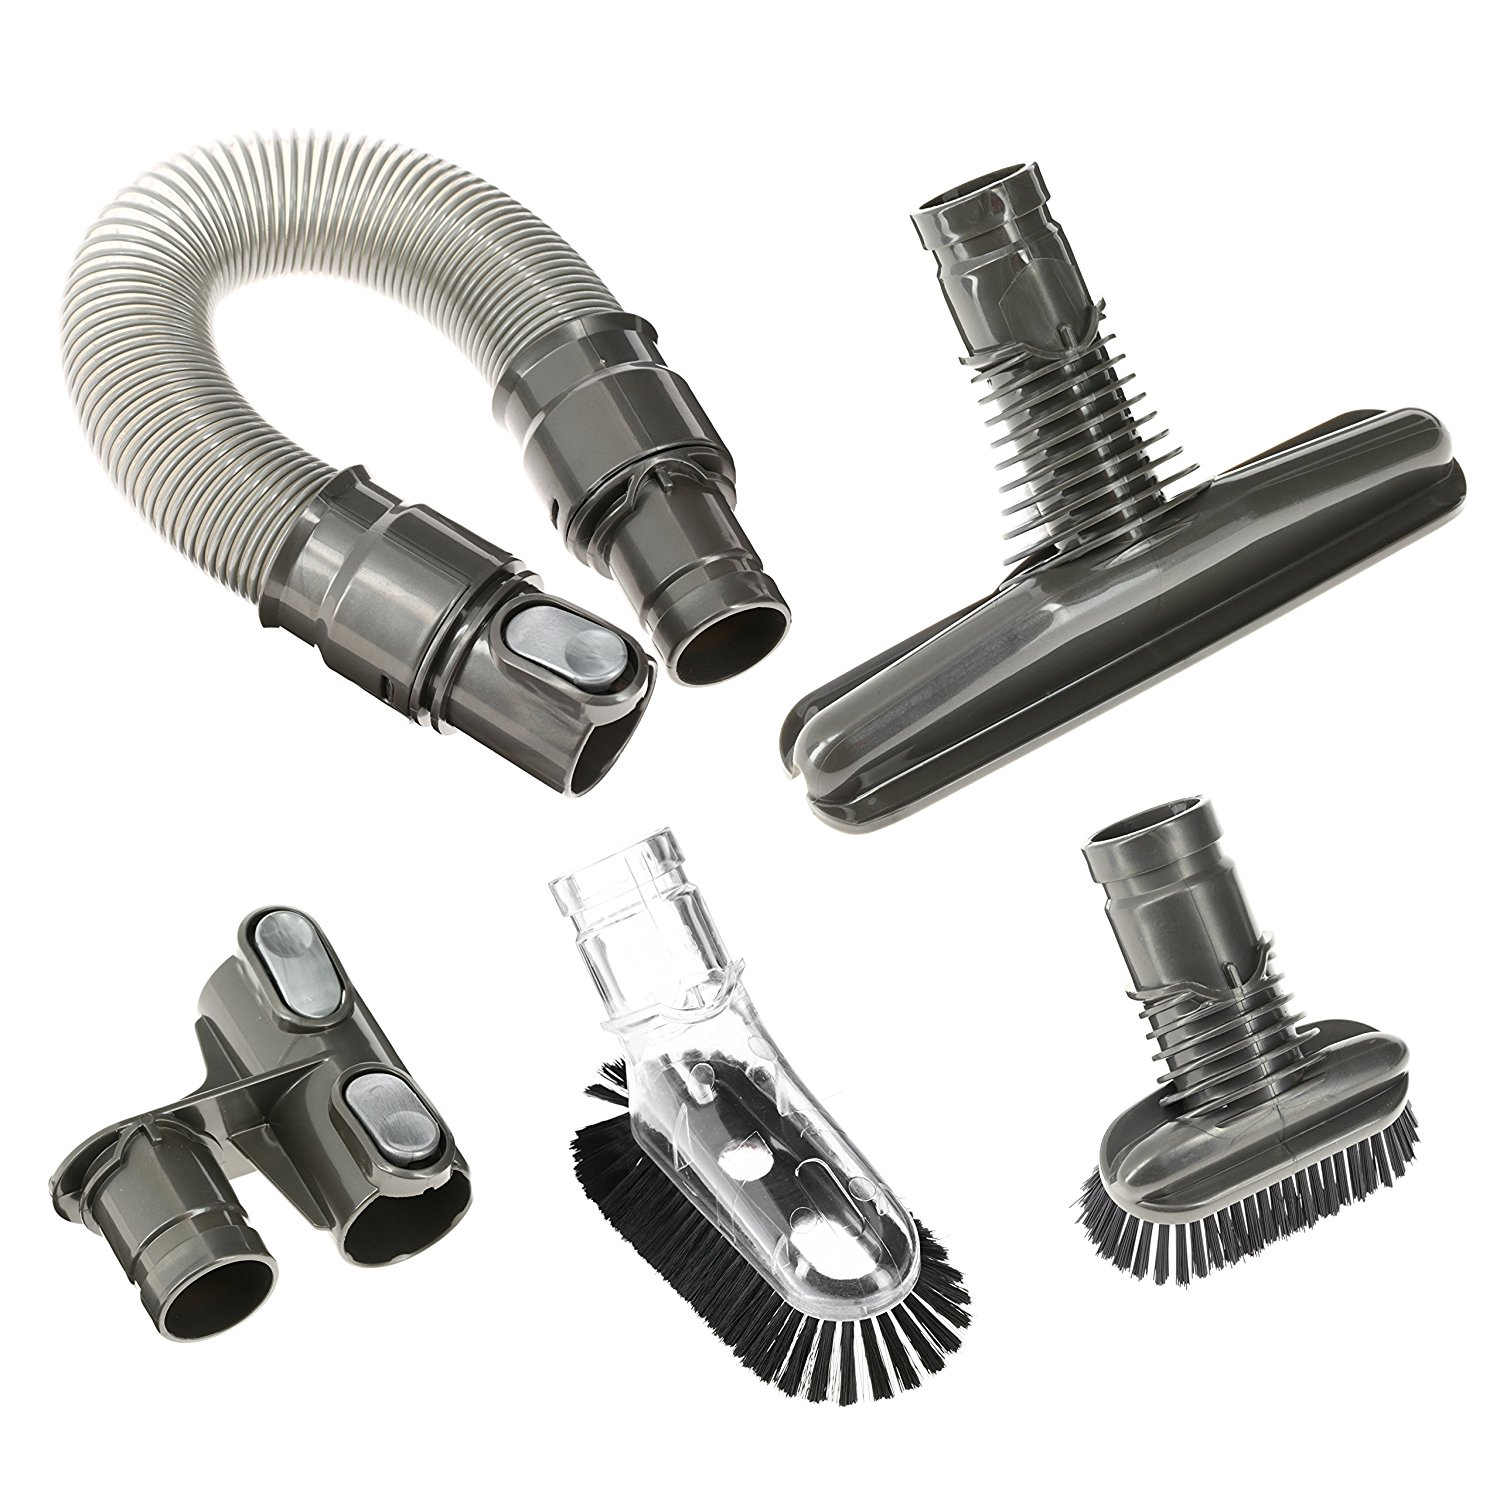 Tool Kit & Hose For Dyson DC16 DC31DC35 DC44 DC56 DC59 Handheld Vacuum Cleaners